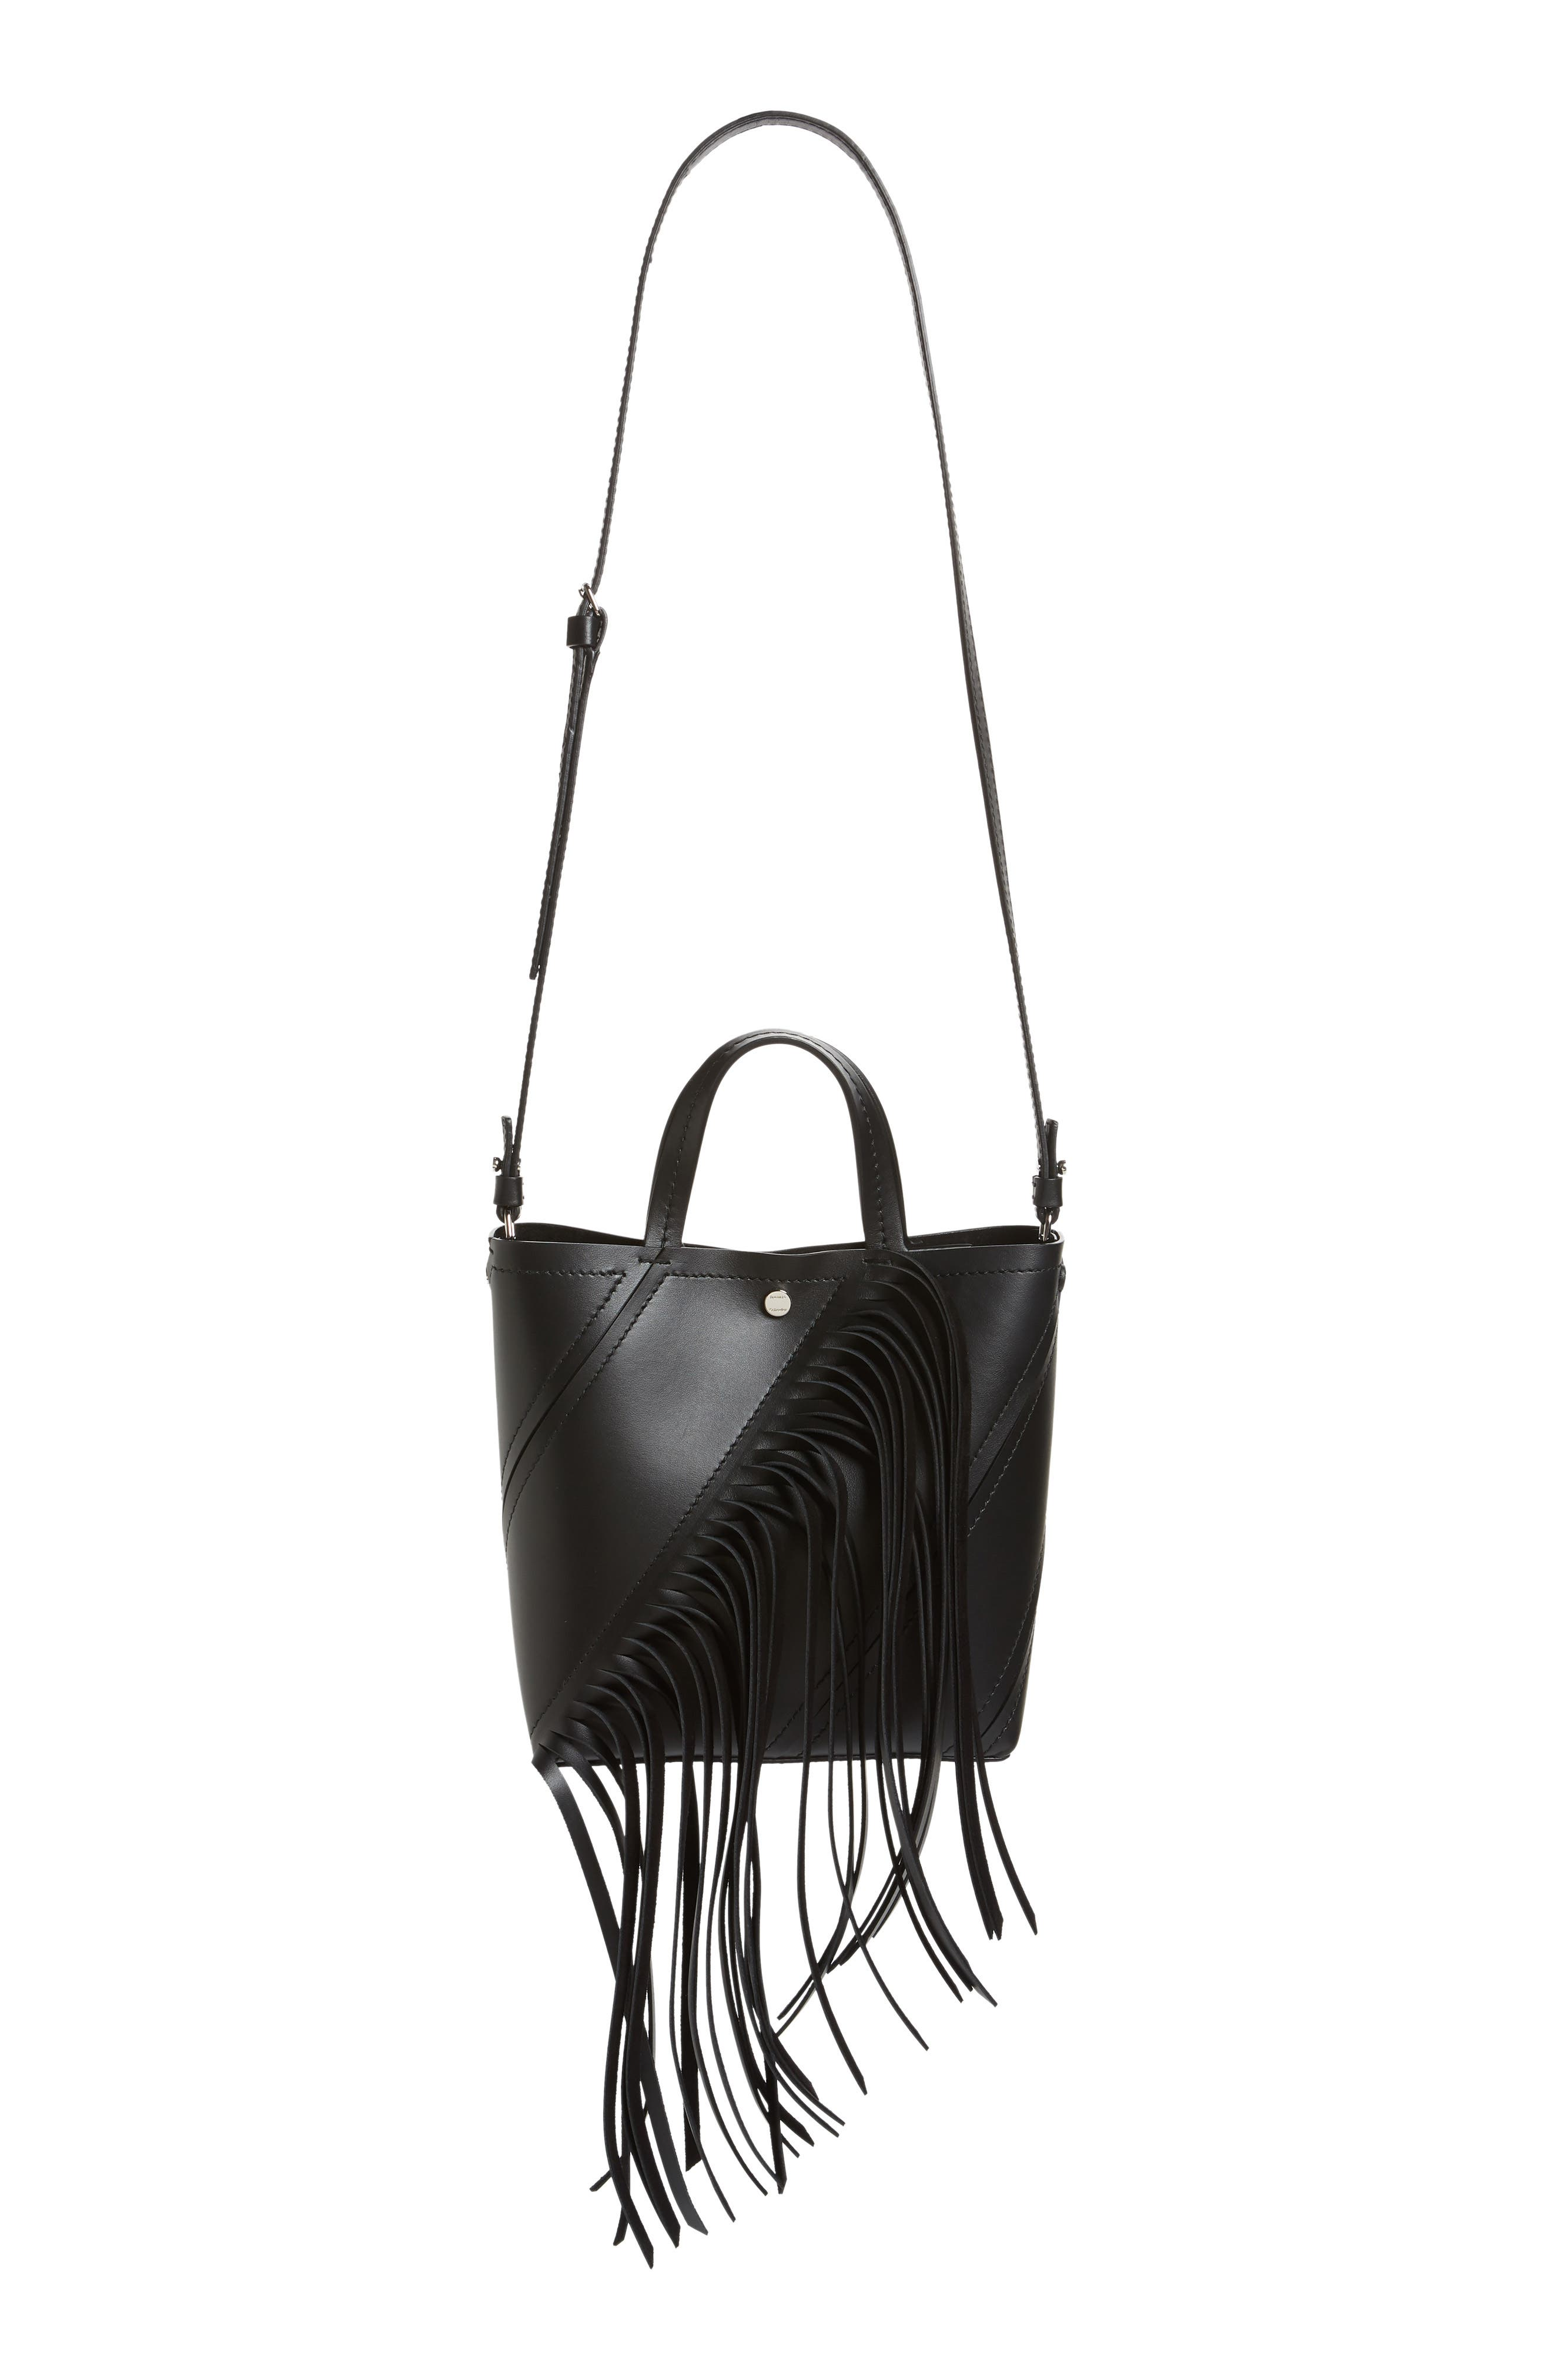 PROENZA SCHOULER, Proenza Schoulder Small Hex Calfskin Leather Tote, Alternate thumbnail 2, color, BLACK/ BLACK